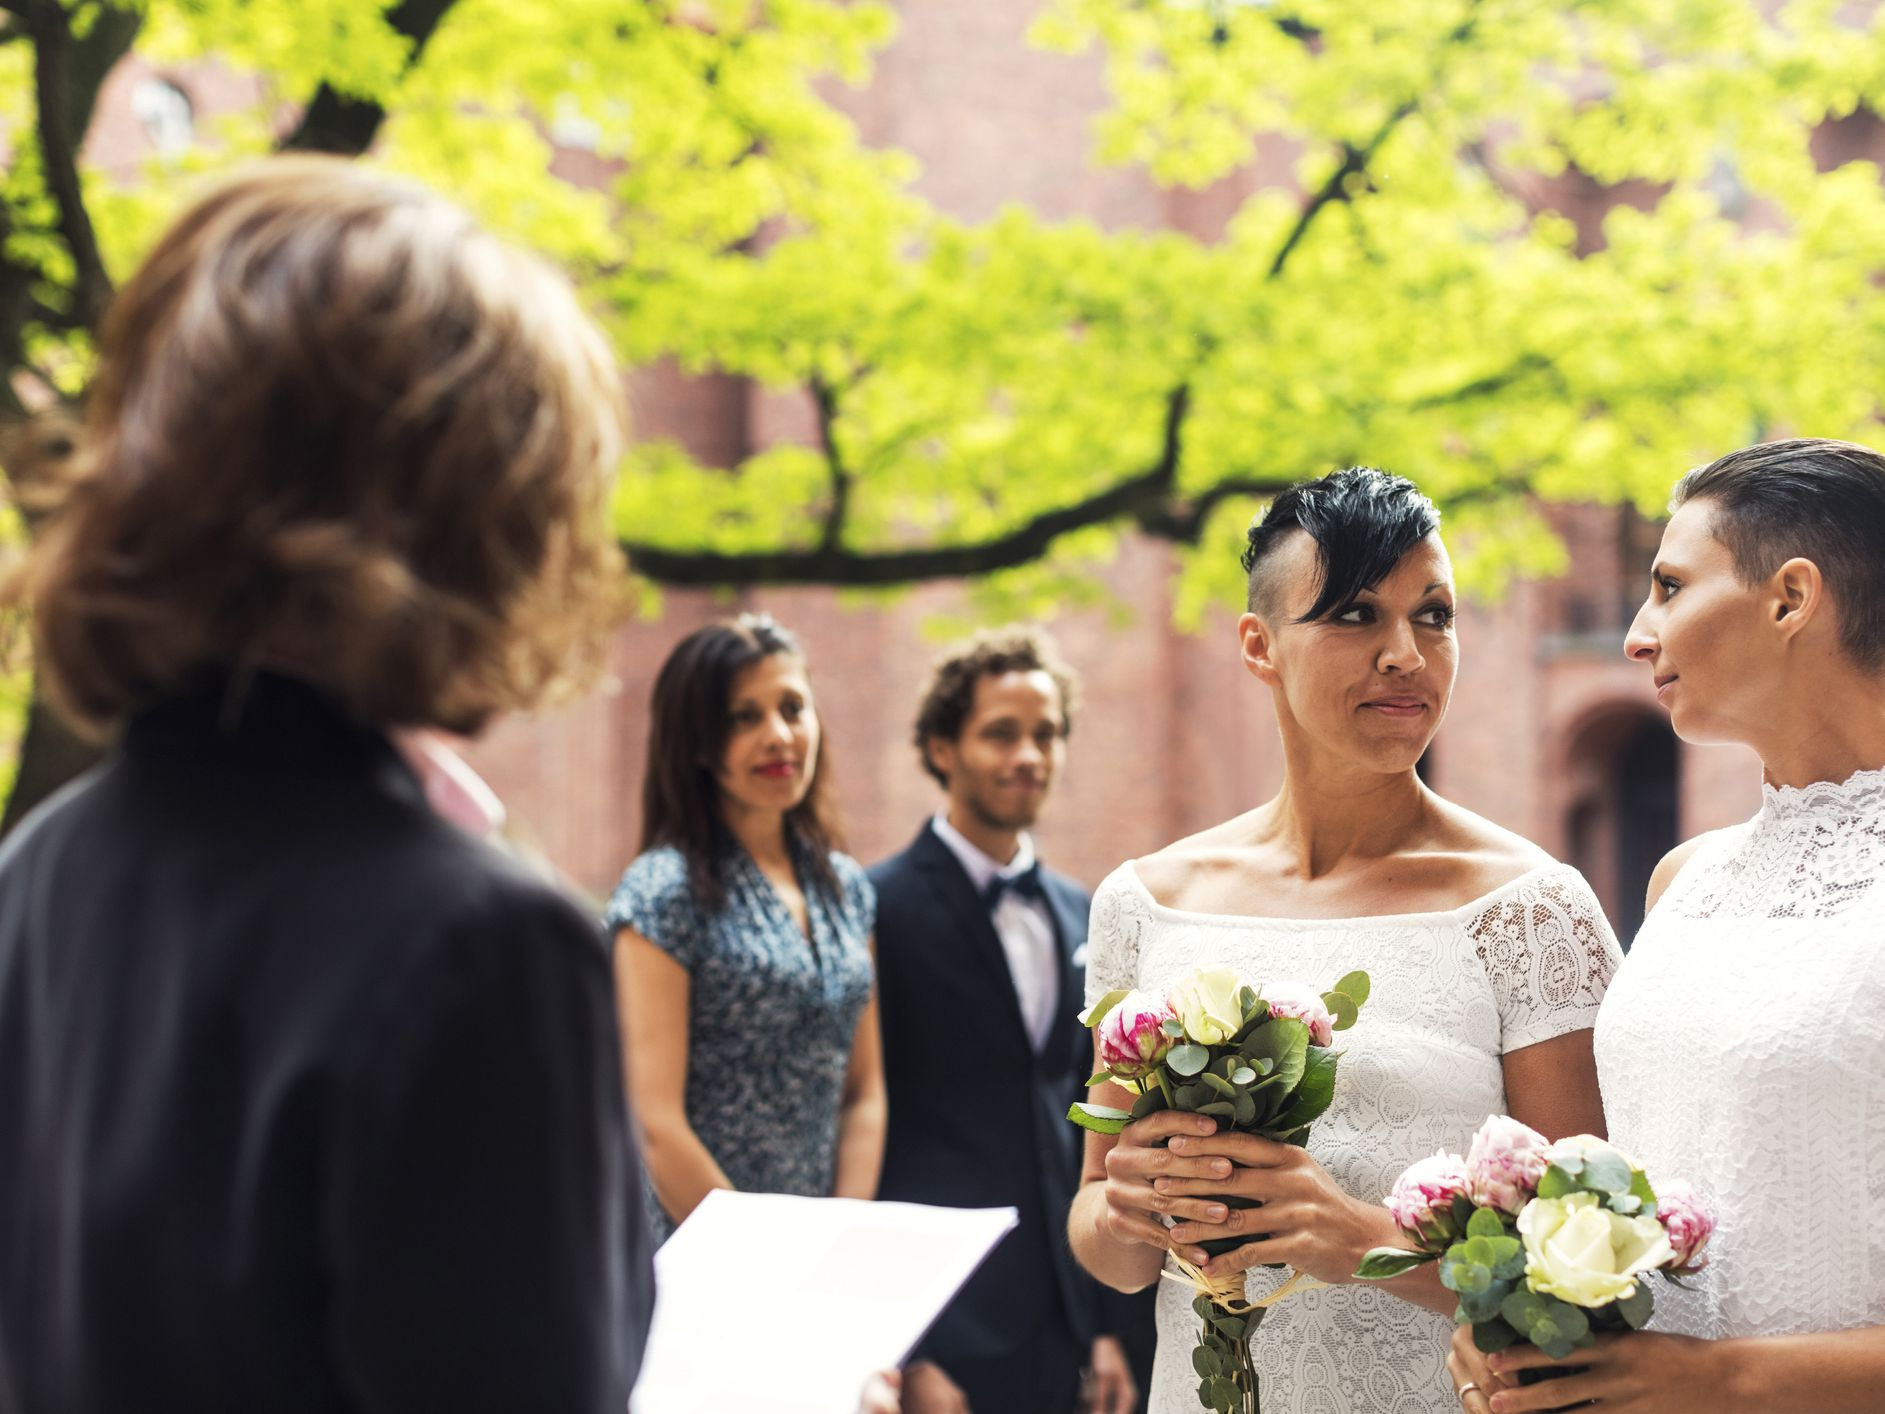 Recognized Marriage Officiants by State